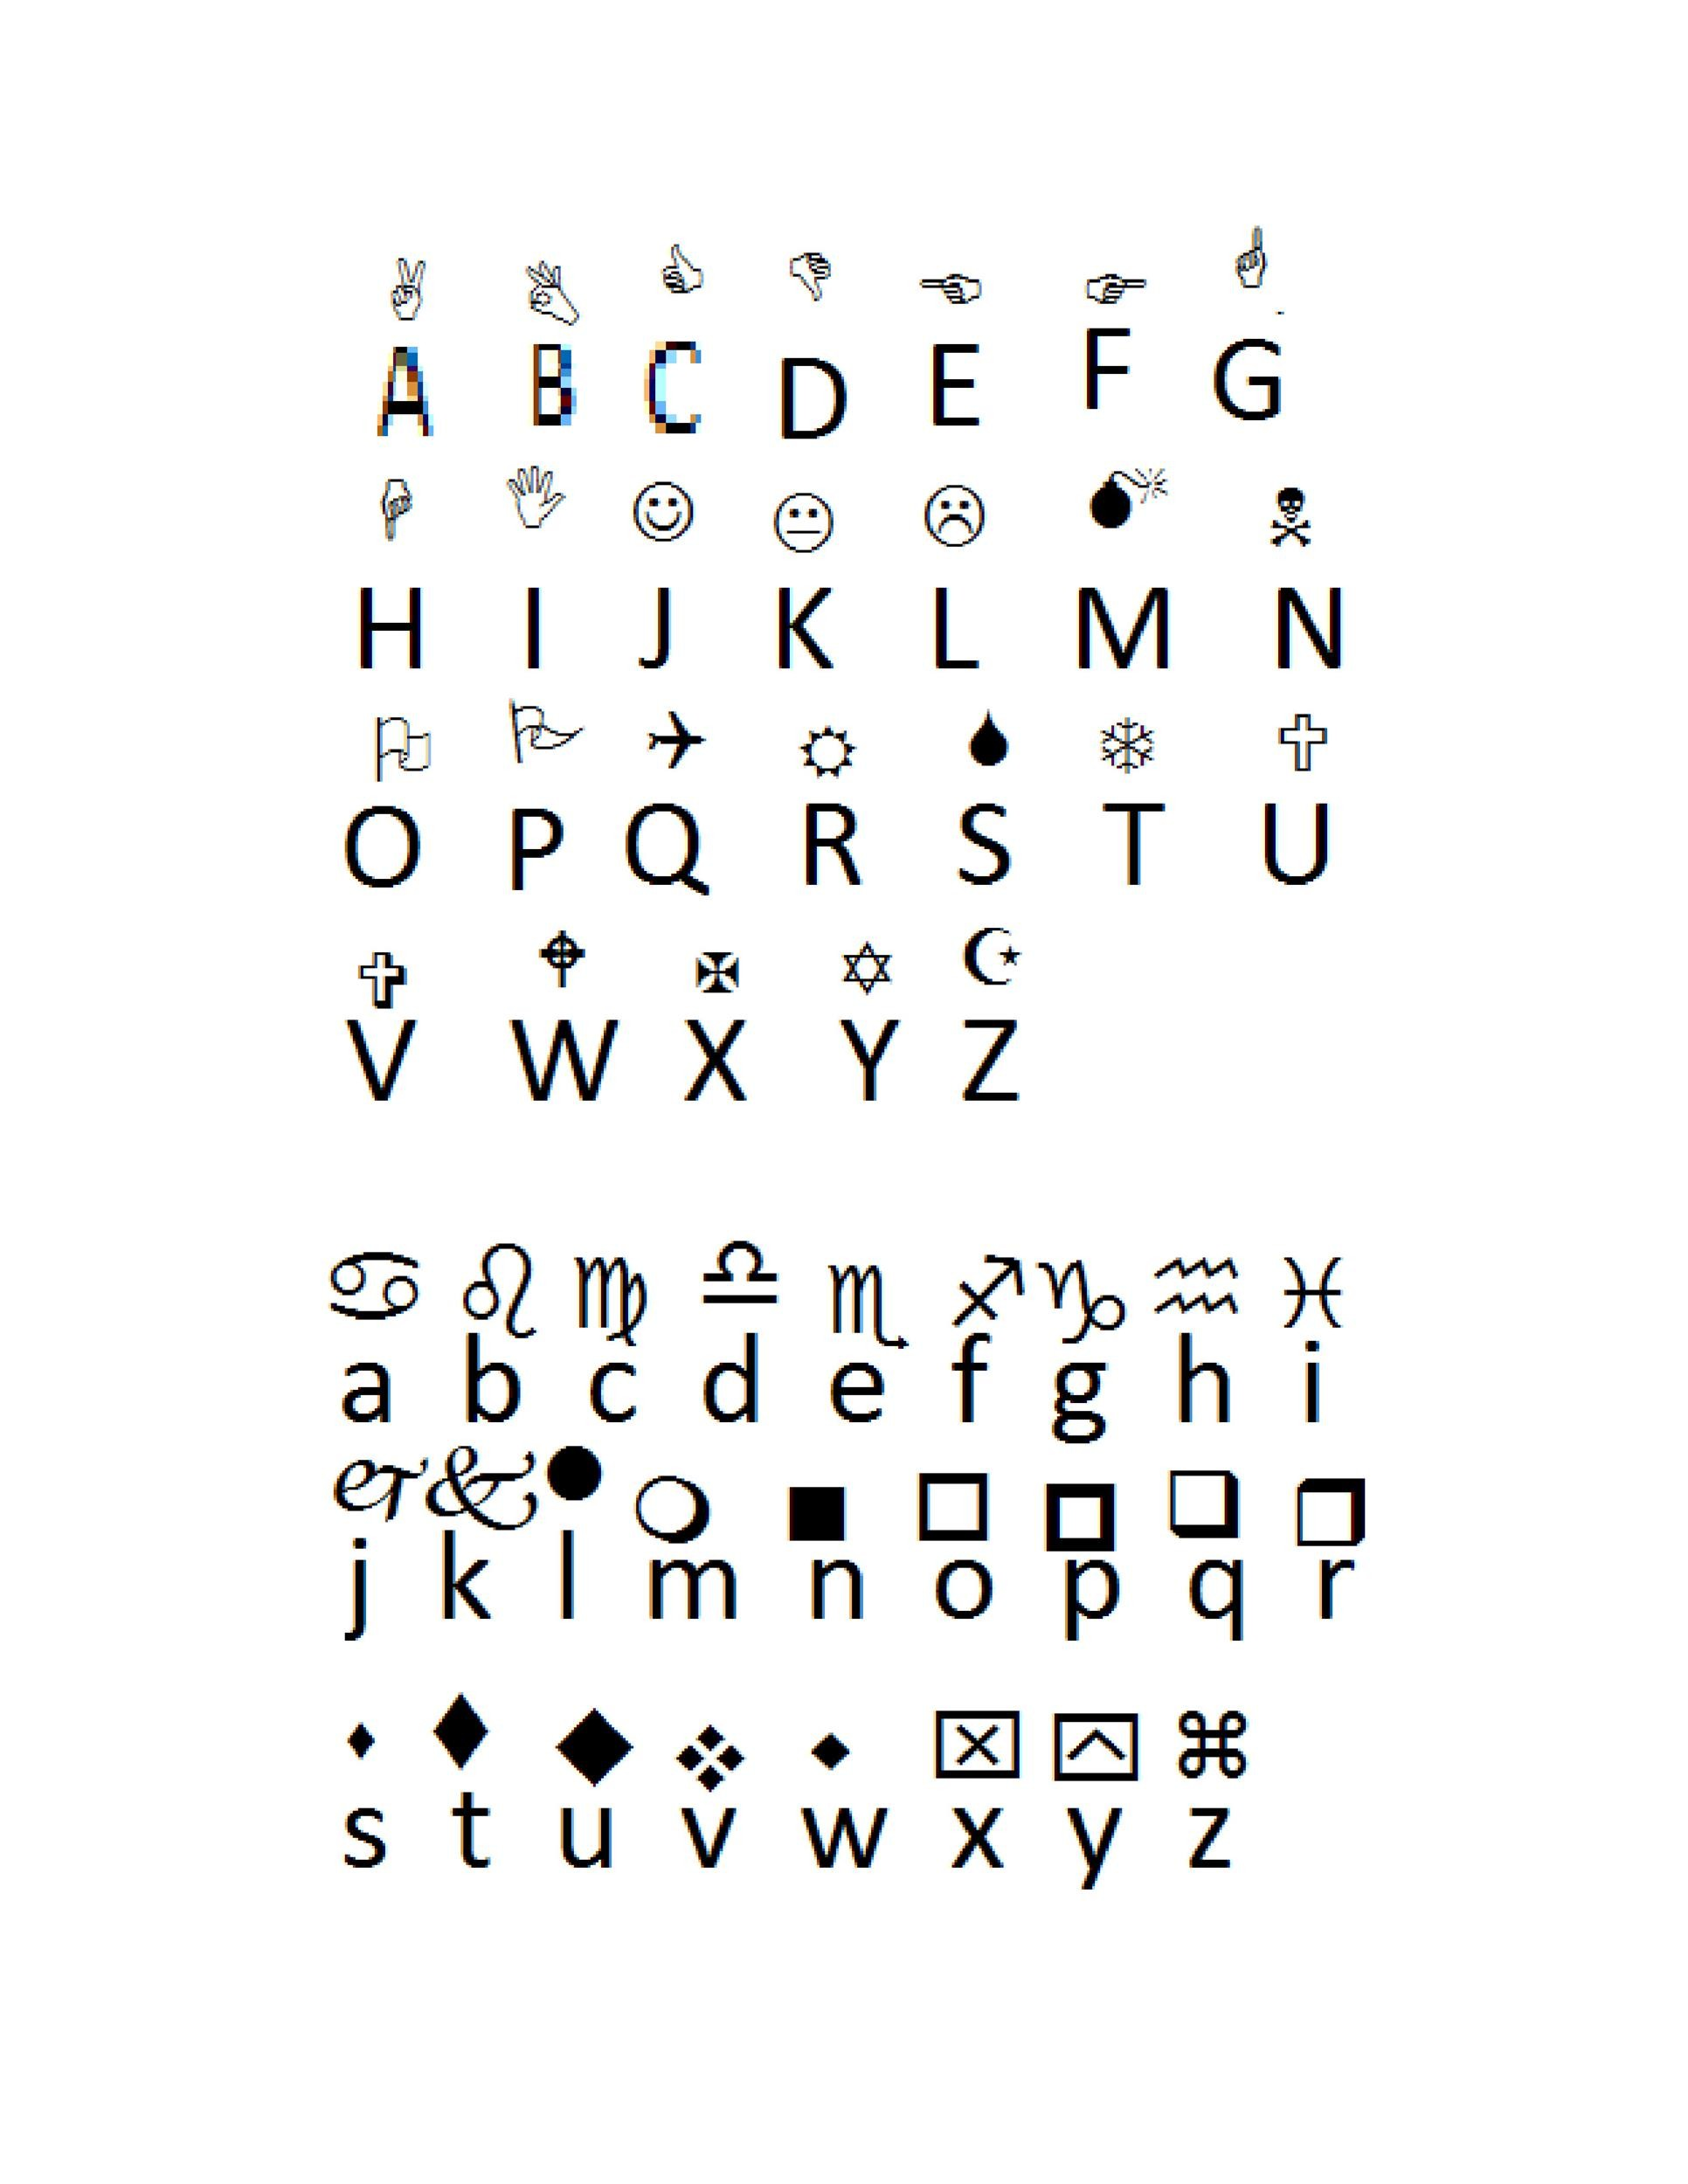 Free wingdings translator template 26